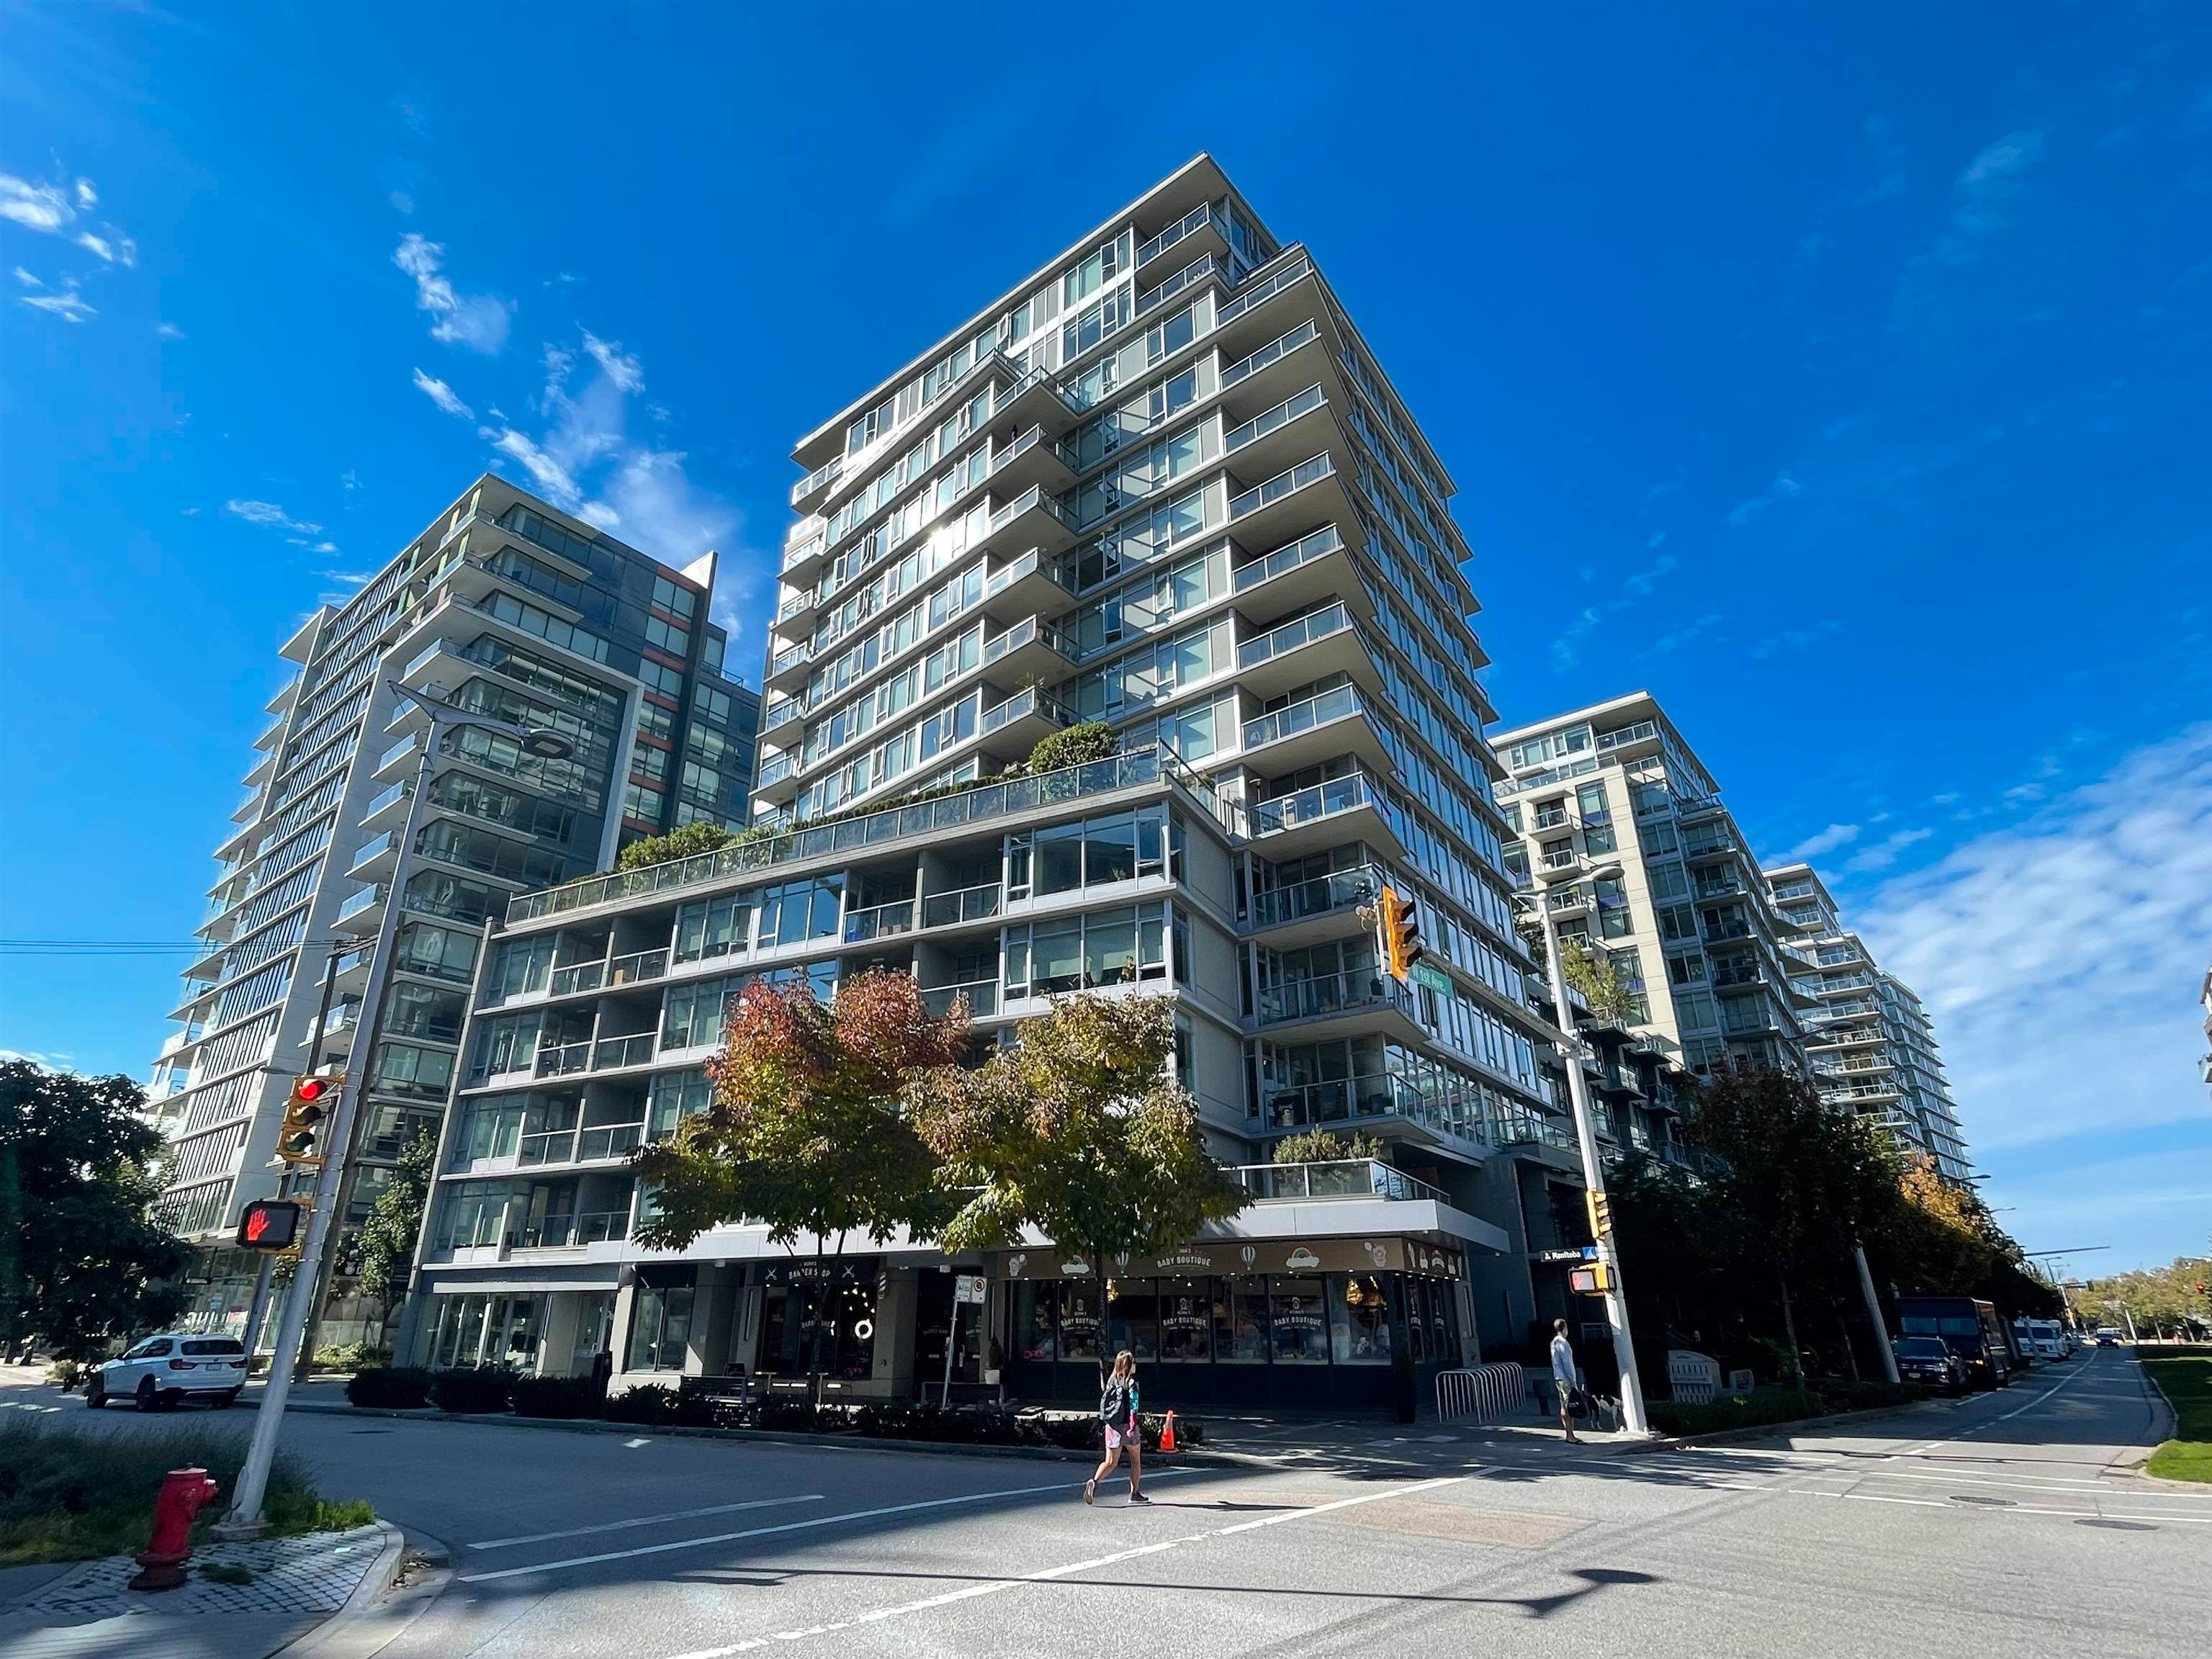 """Main Photo: 251 108 W 1ST Avenue in Vancouver: False Creek Townhouse for sale in """"WALL CENTRE FALSE CREEK EAST TOWER"""" (Vancouver West)  : MLS®# R2620424"""